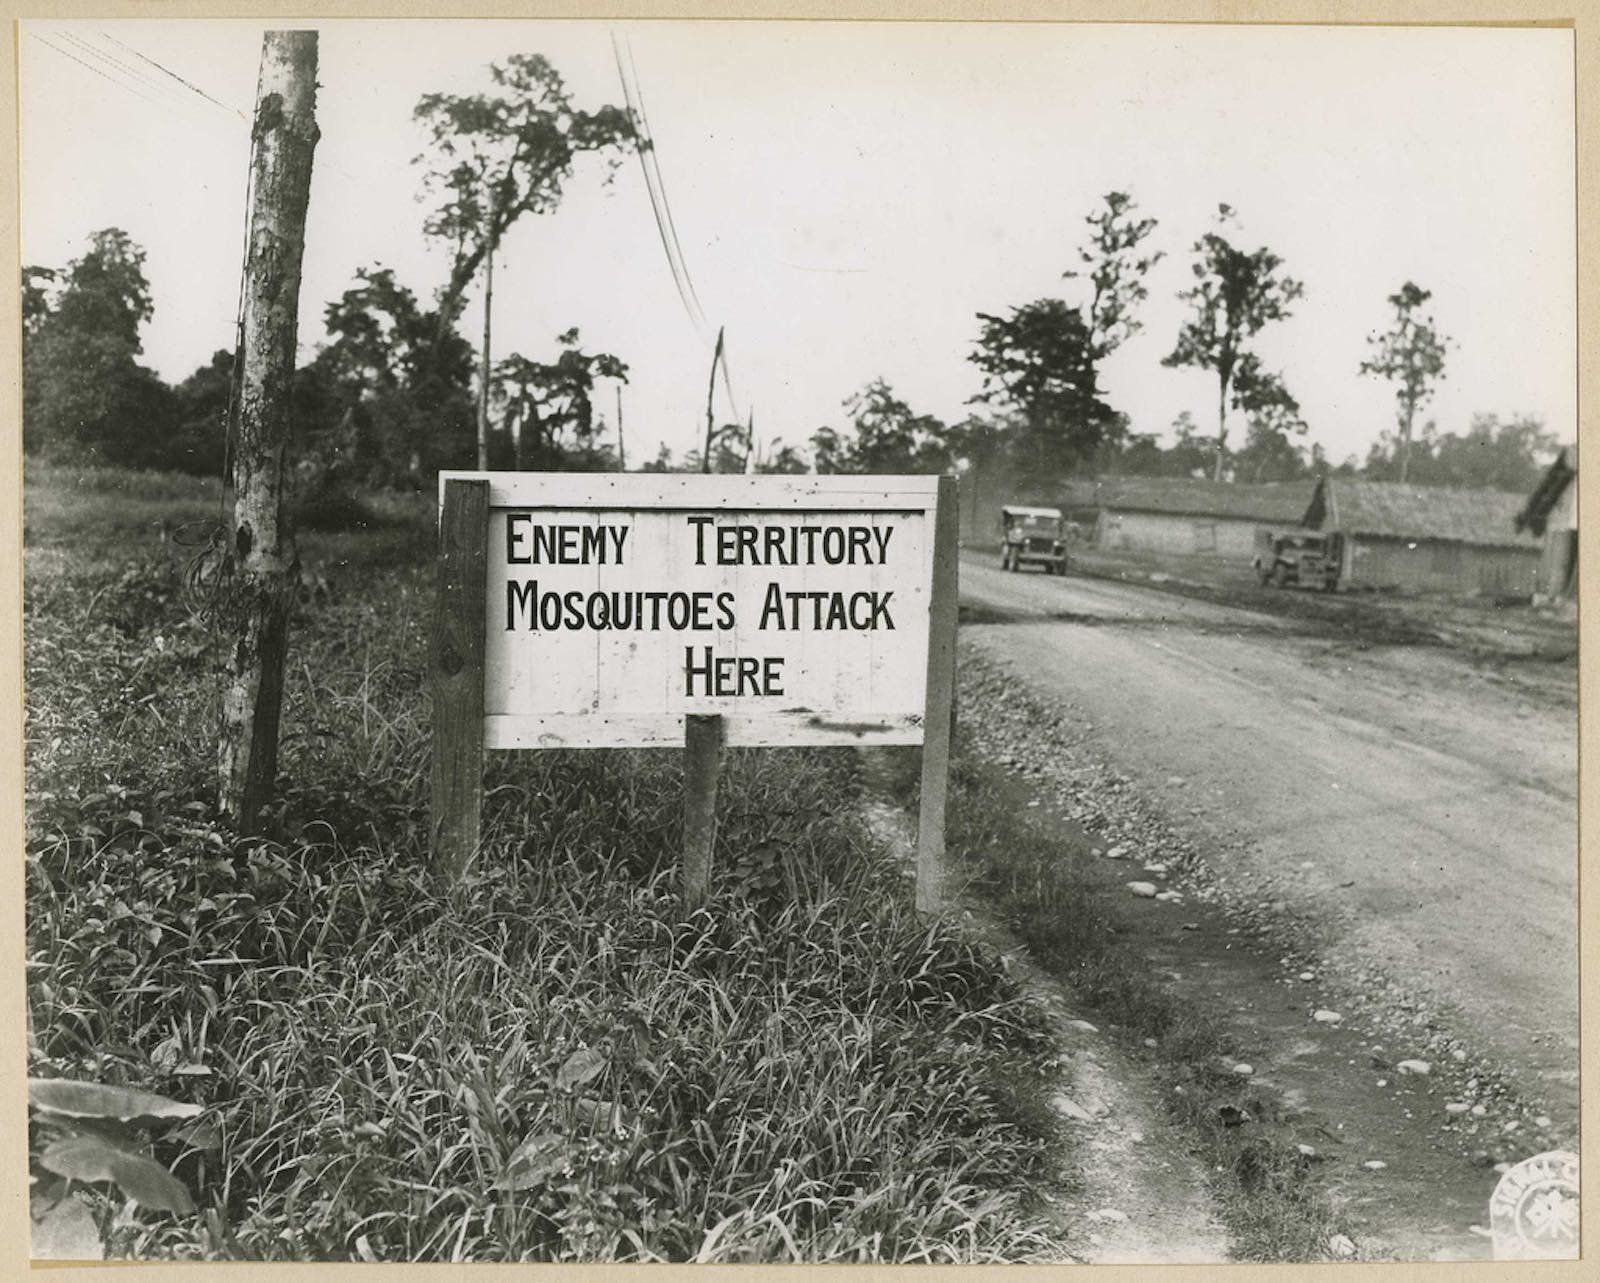 Malaria control efforts during the Second World War (Photo: National Museum of Health and Medicine/Flickr)